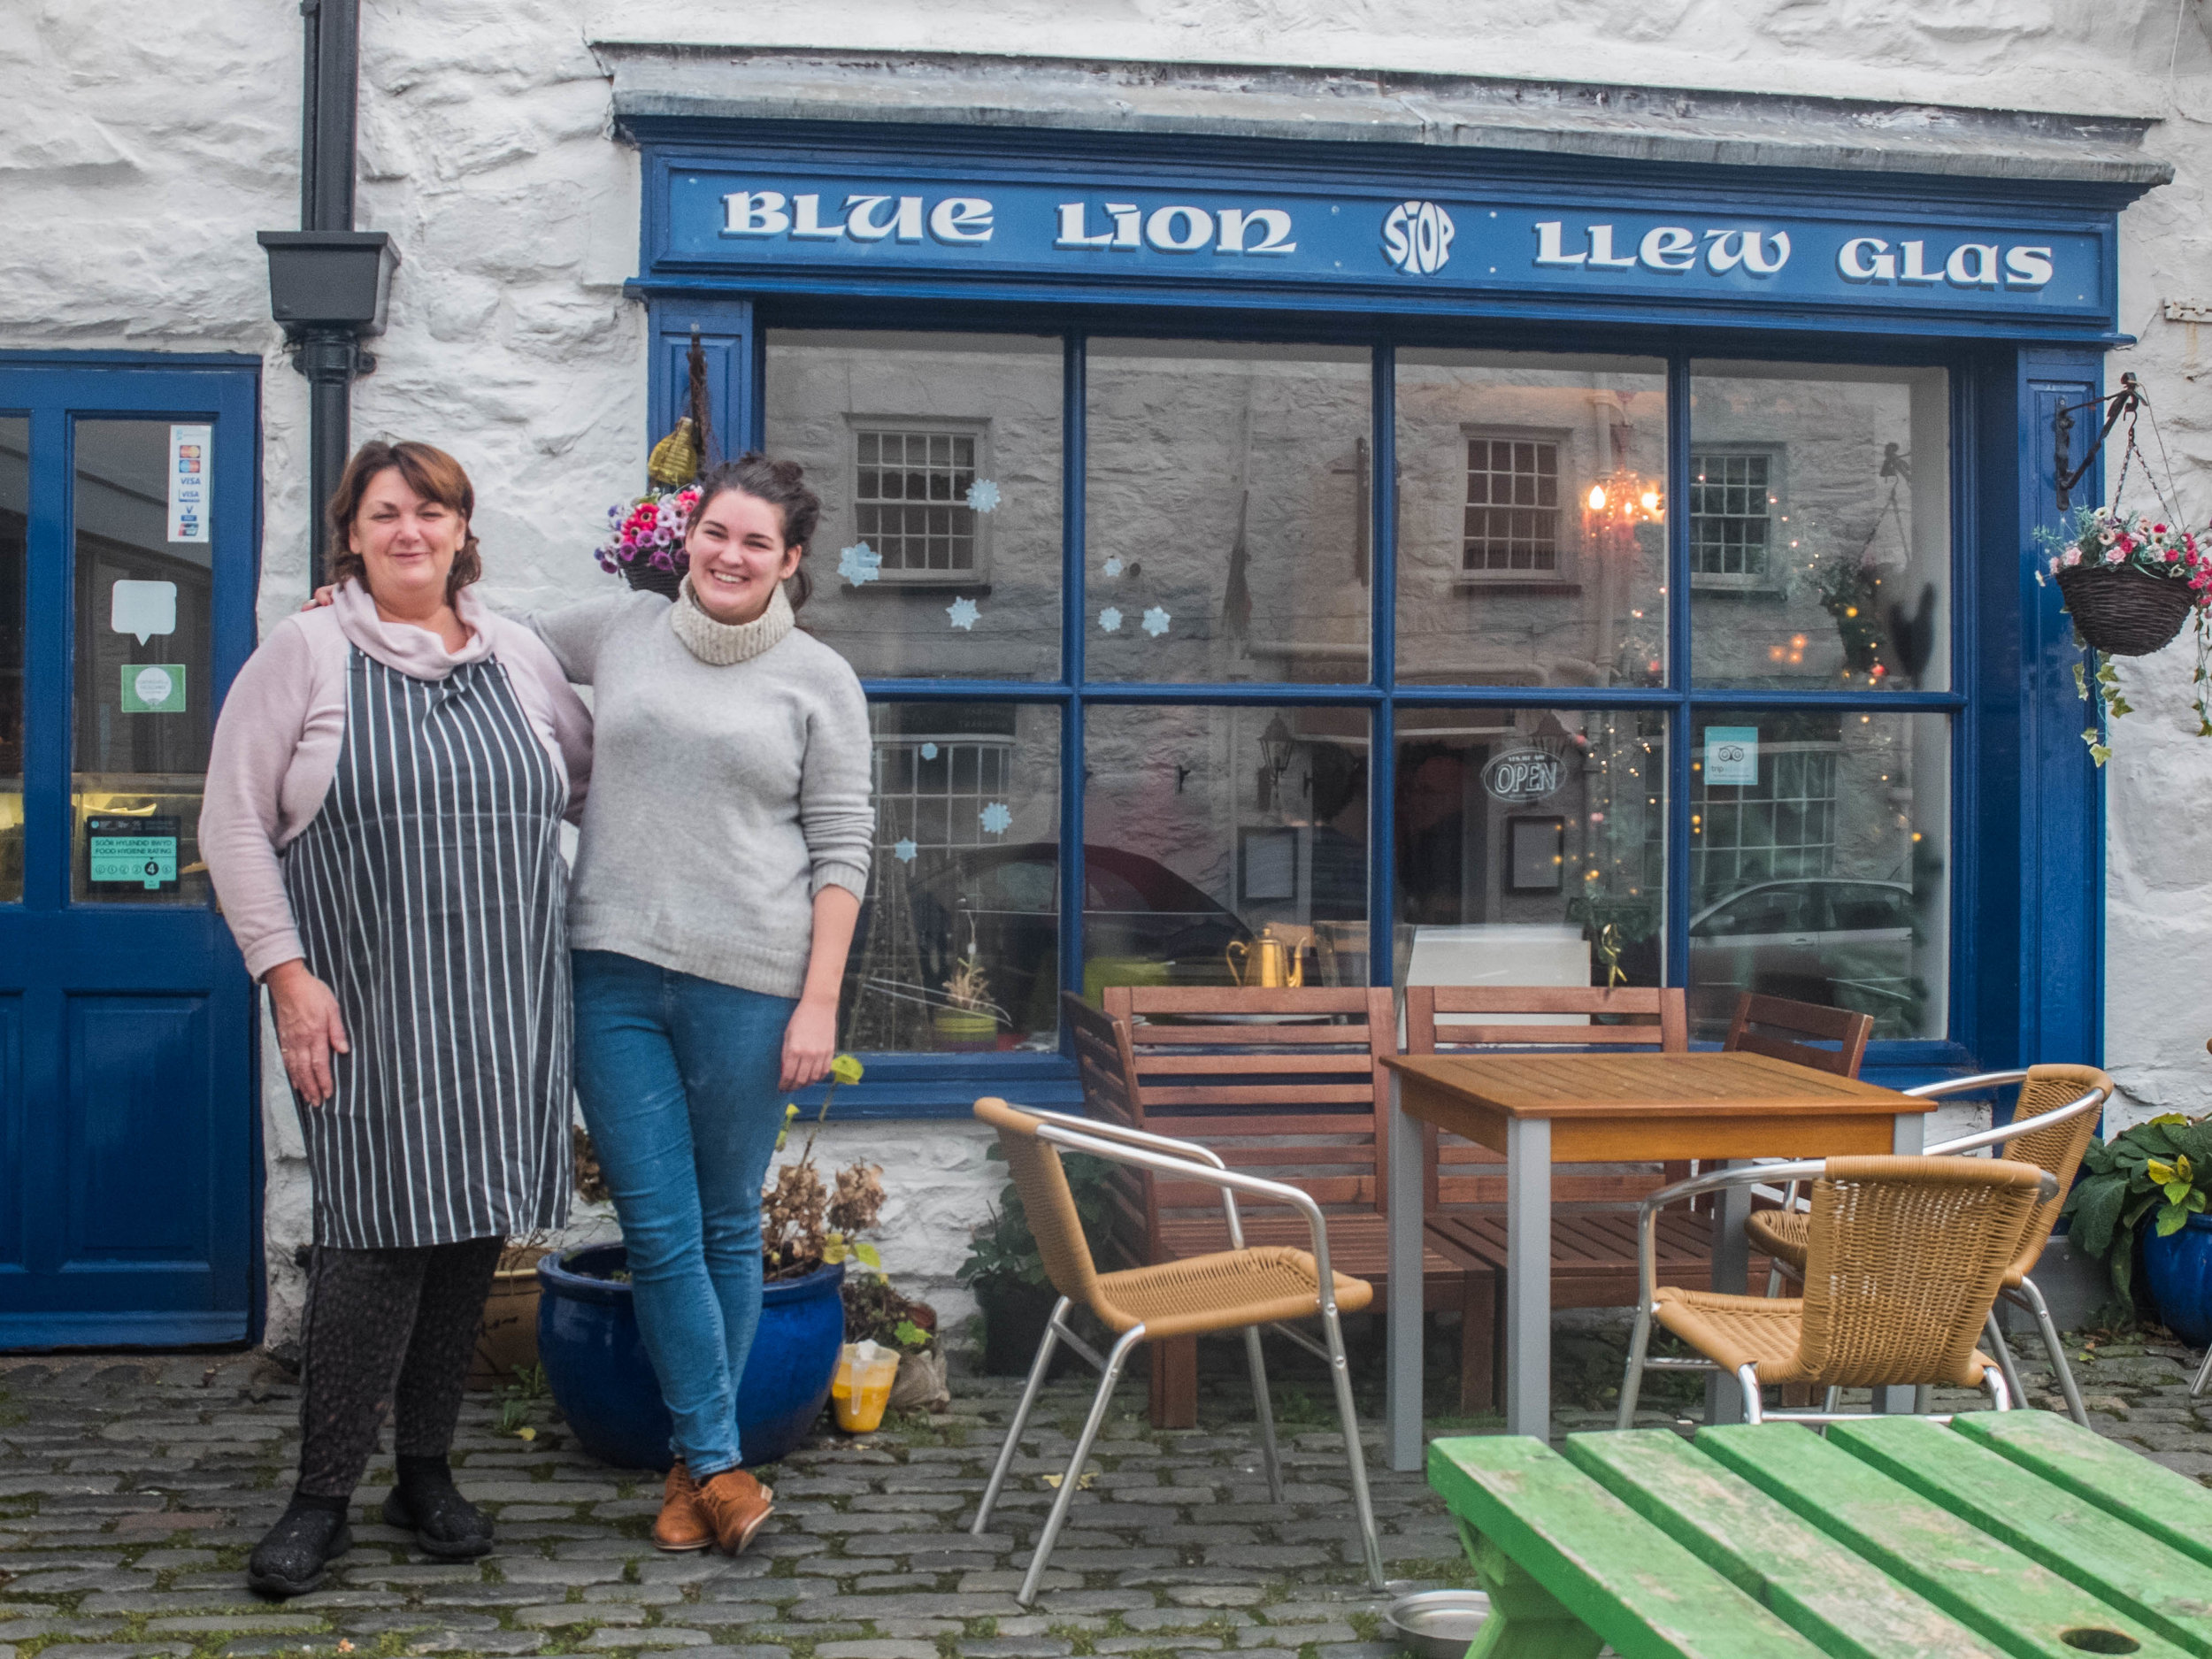 Outside the Llew Glas cafe in Harlech